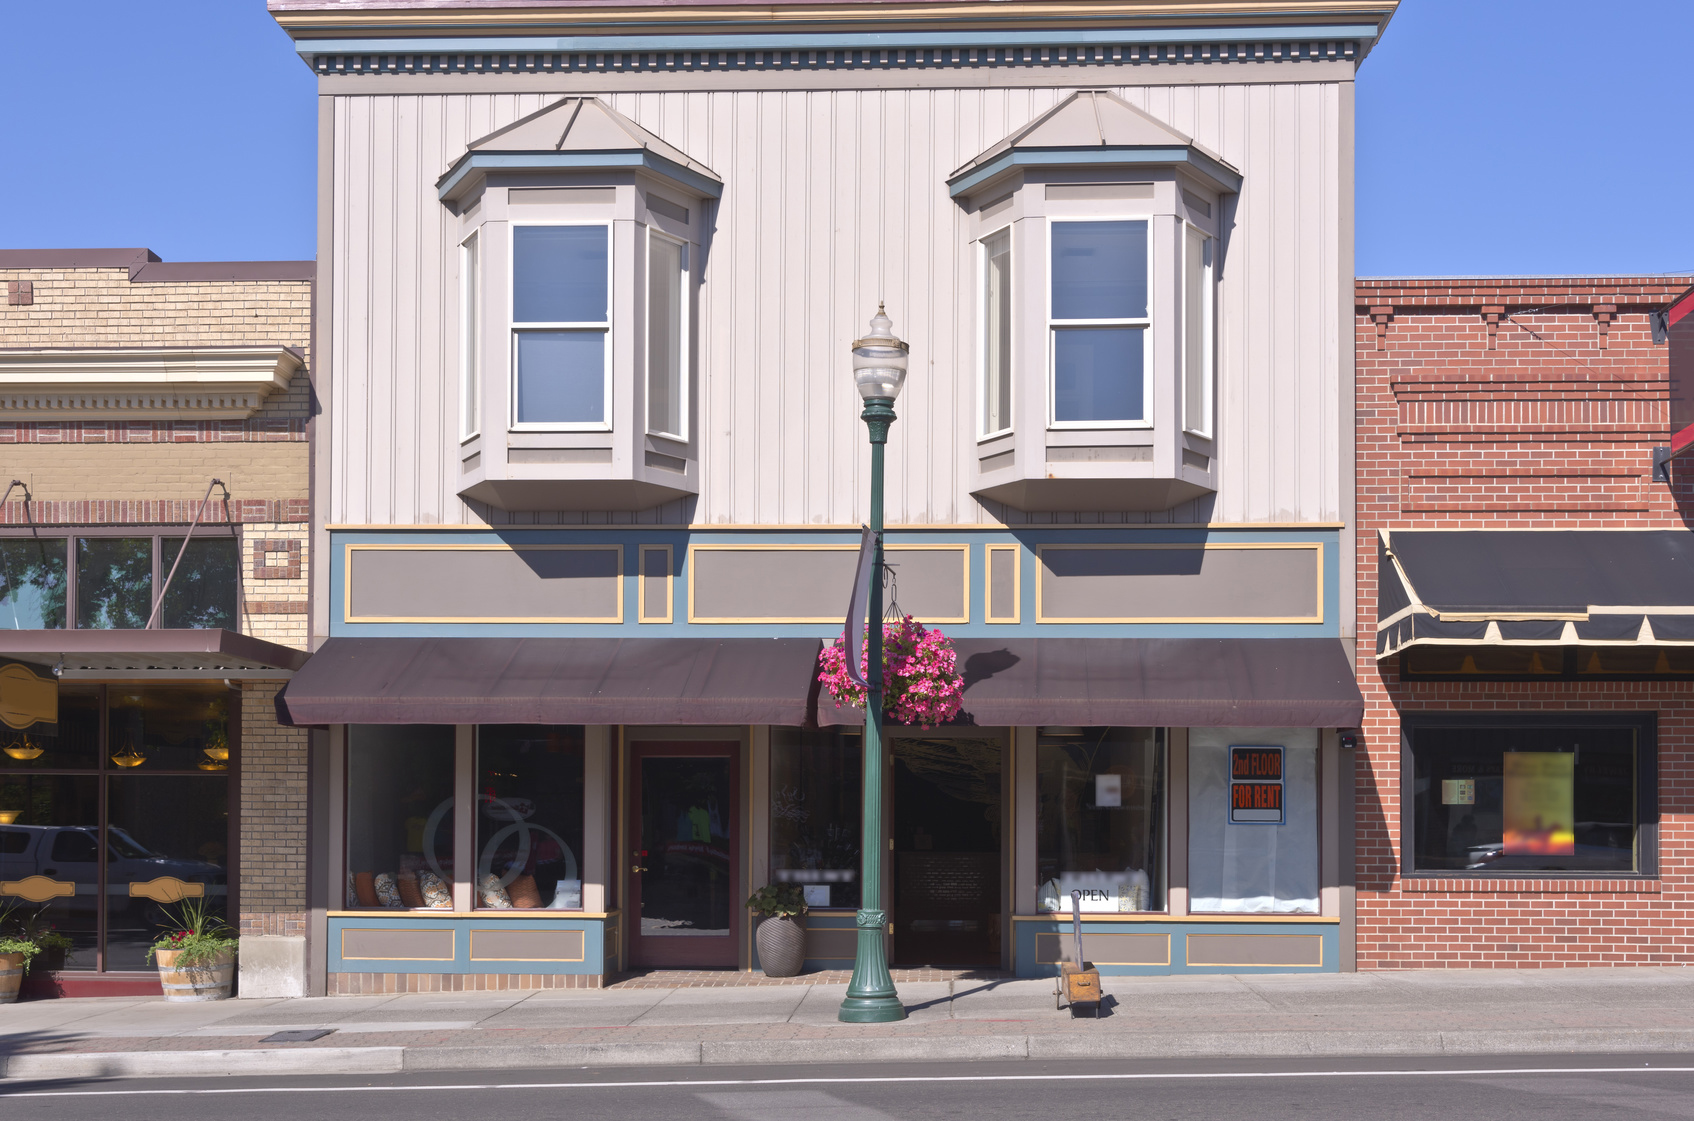 main street type of location with boutique storefront